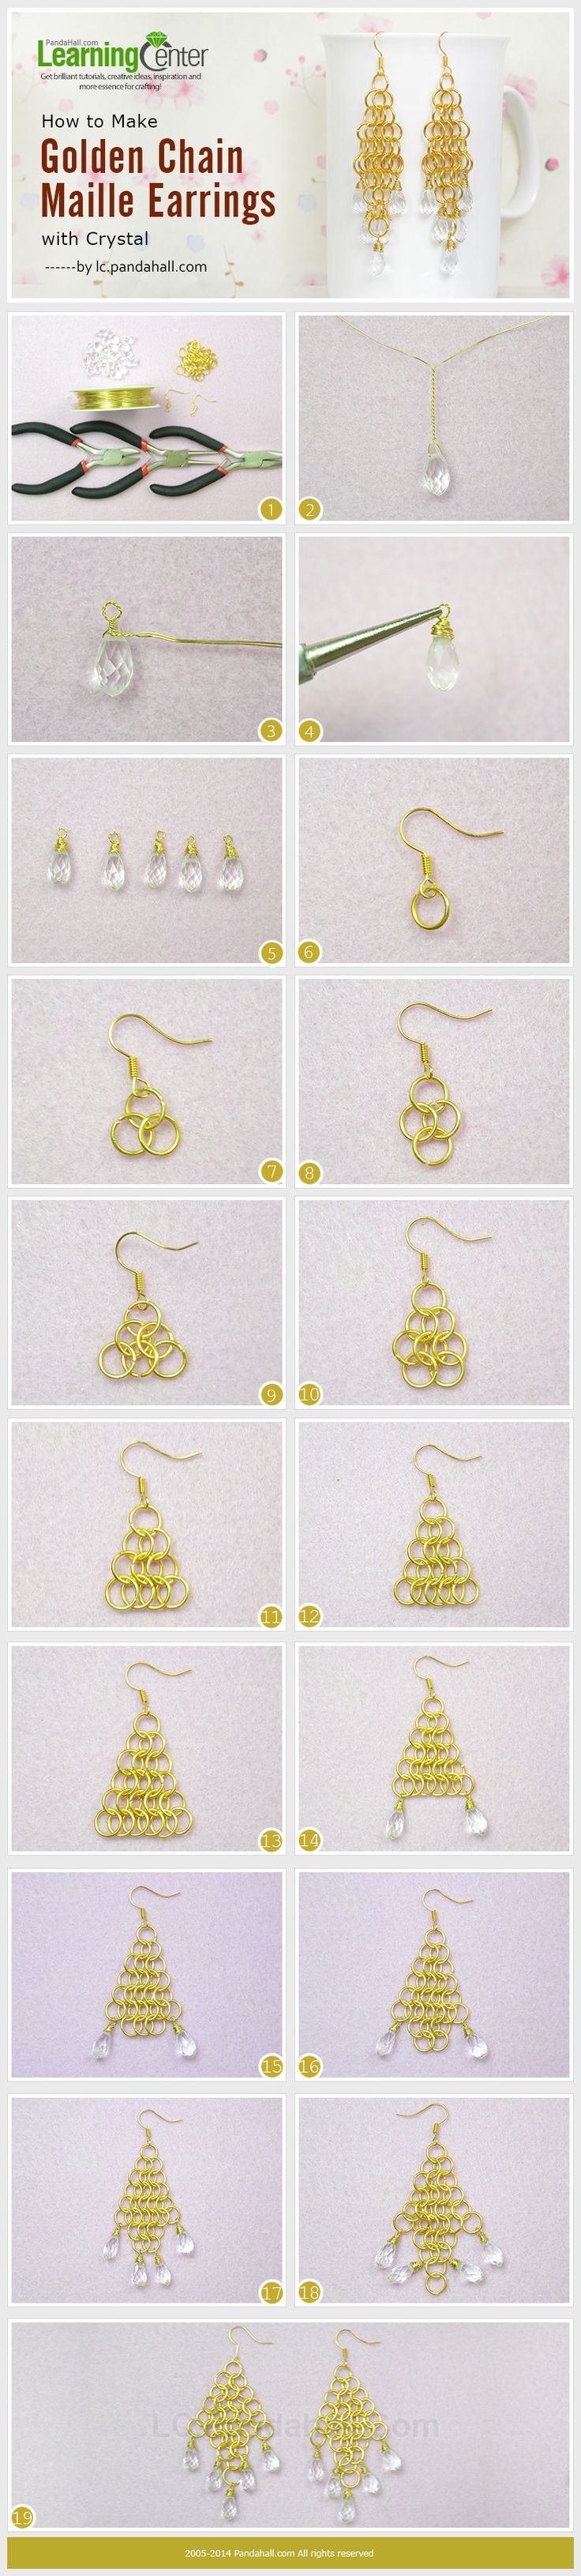 How to Make Golden Chain Maille Earrings with Crystal